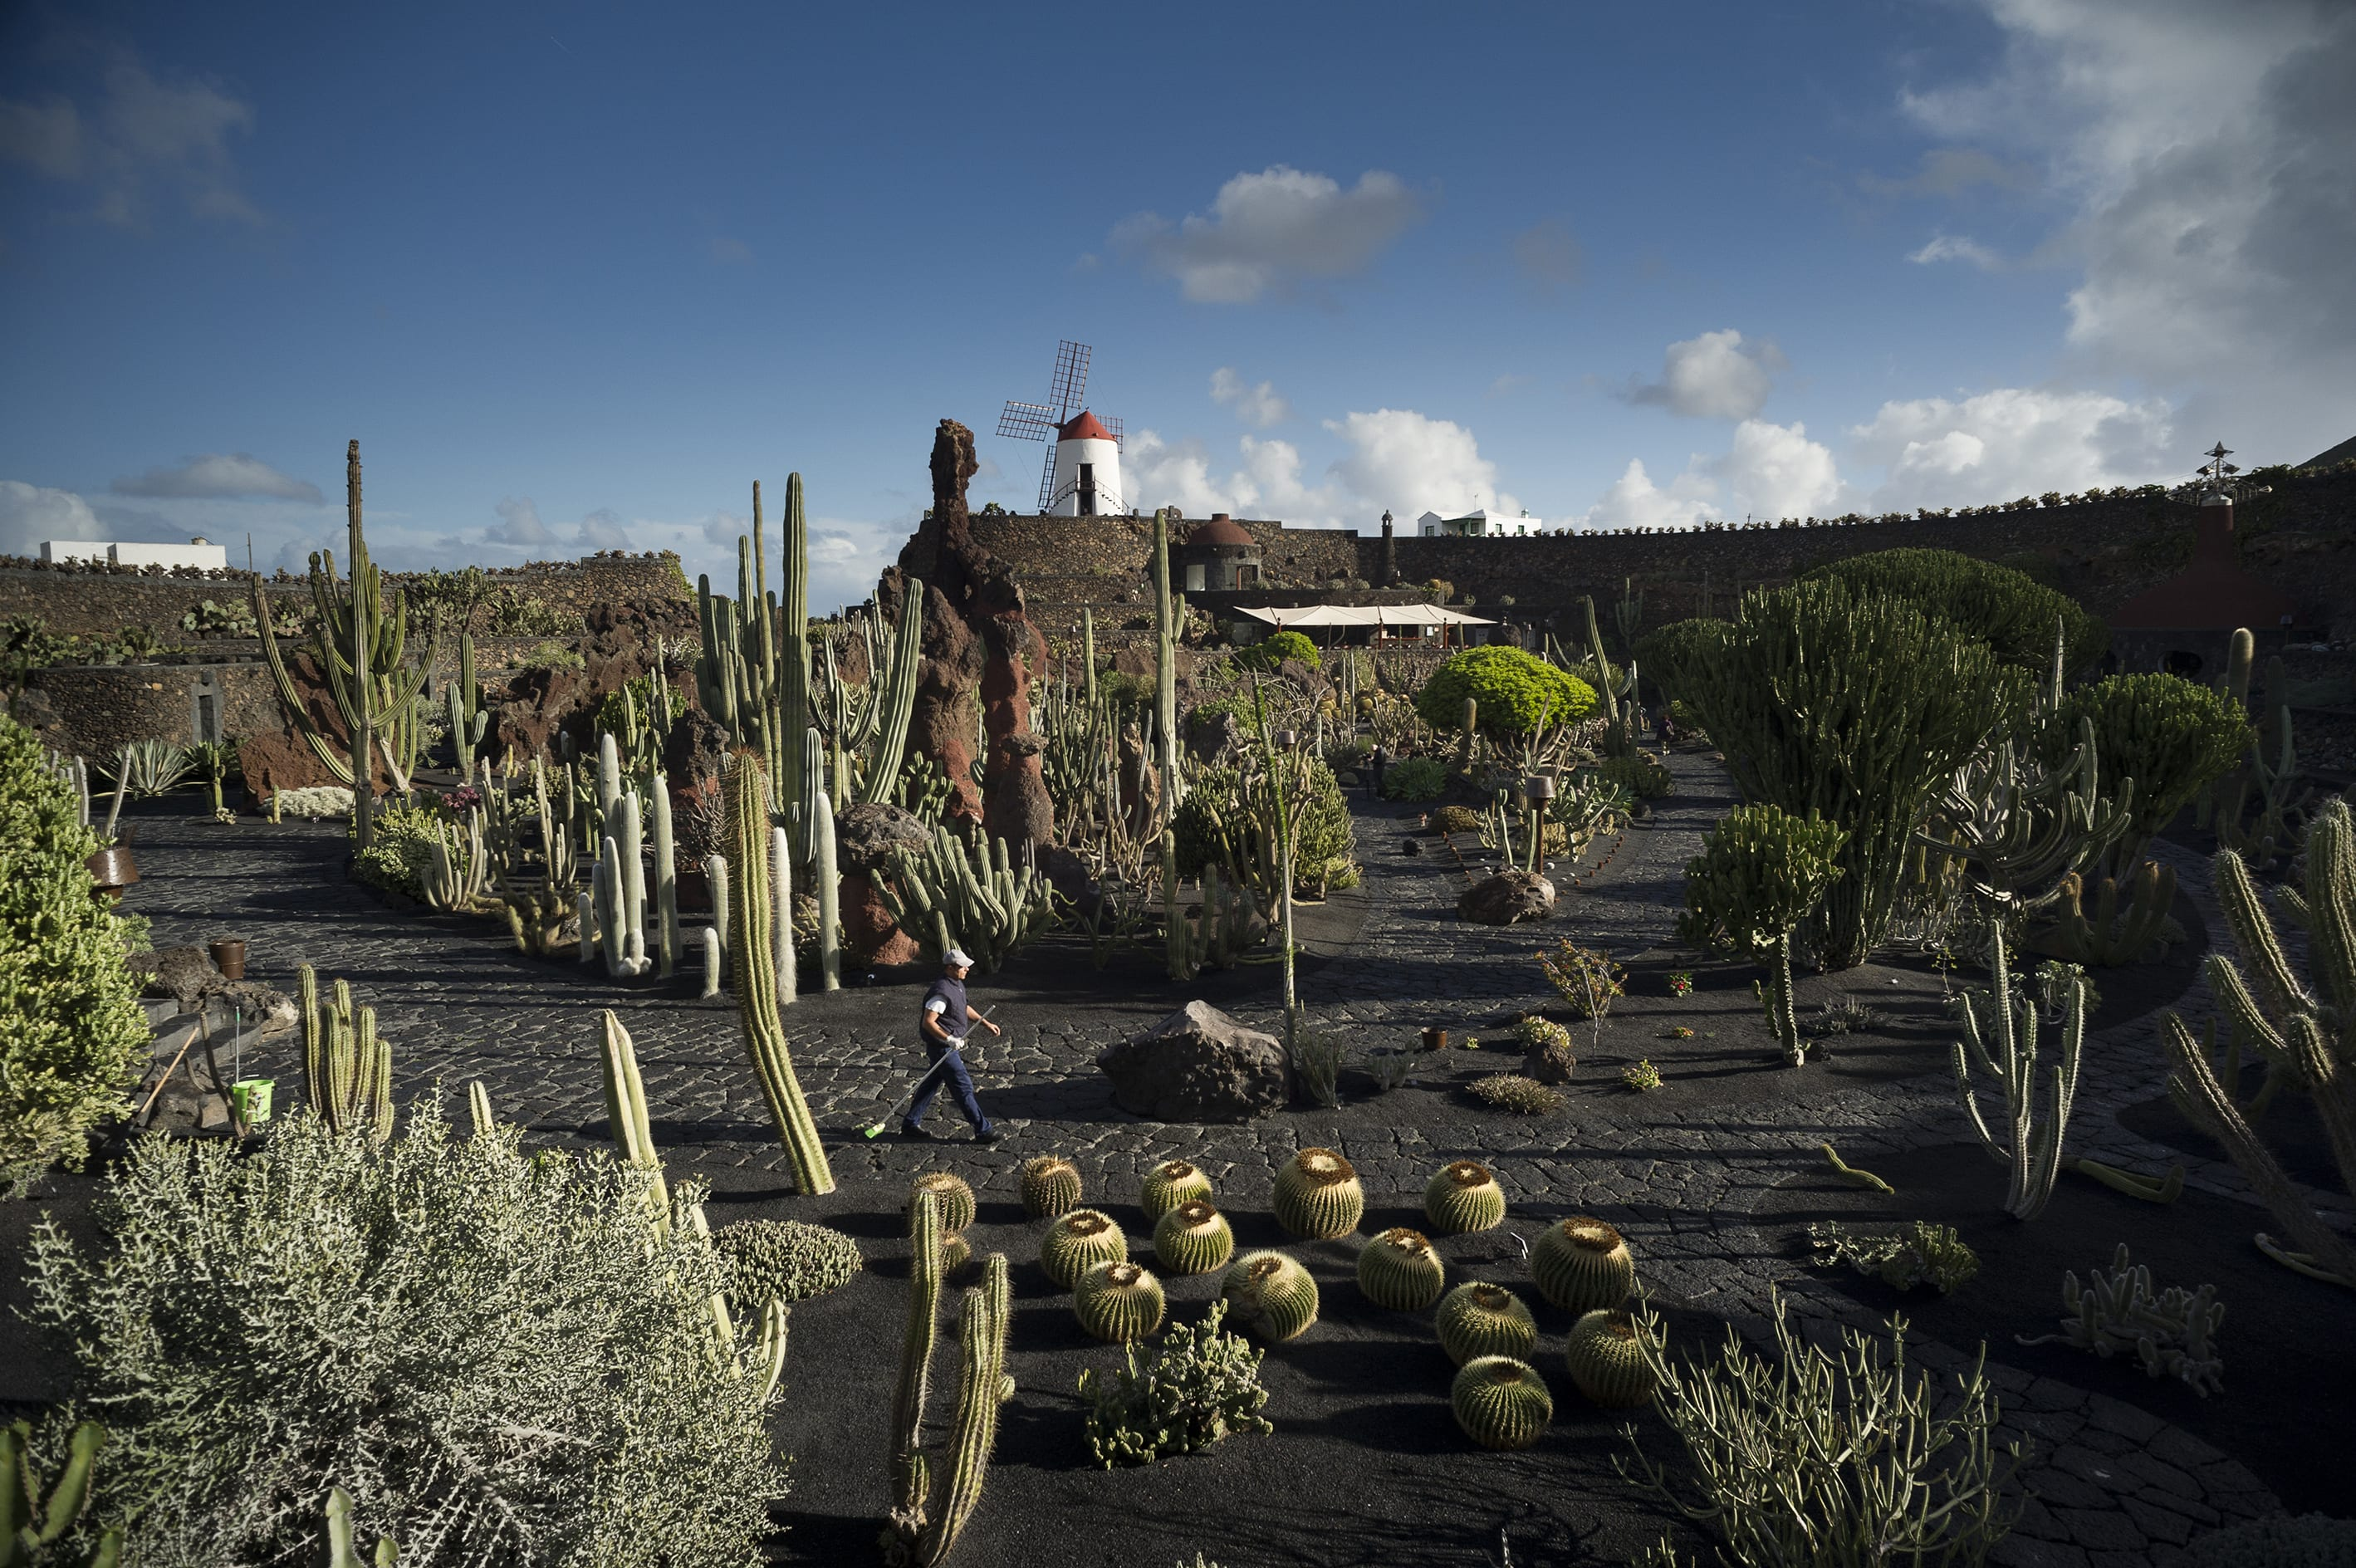 Cesar Manrique Andrea Rizza Goldstein Jardin De Cactus Divisare Images, Photos, Reviews